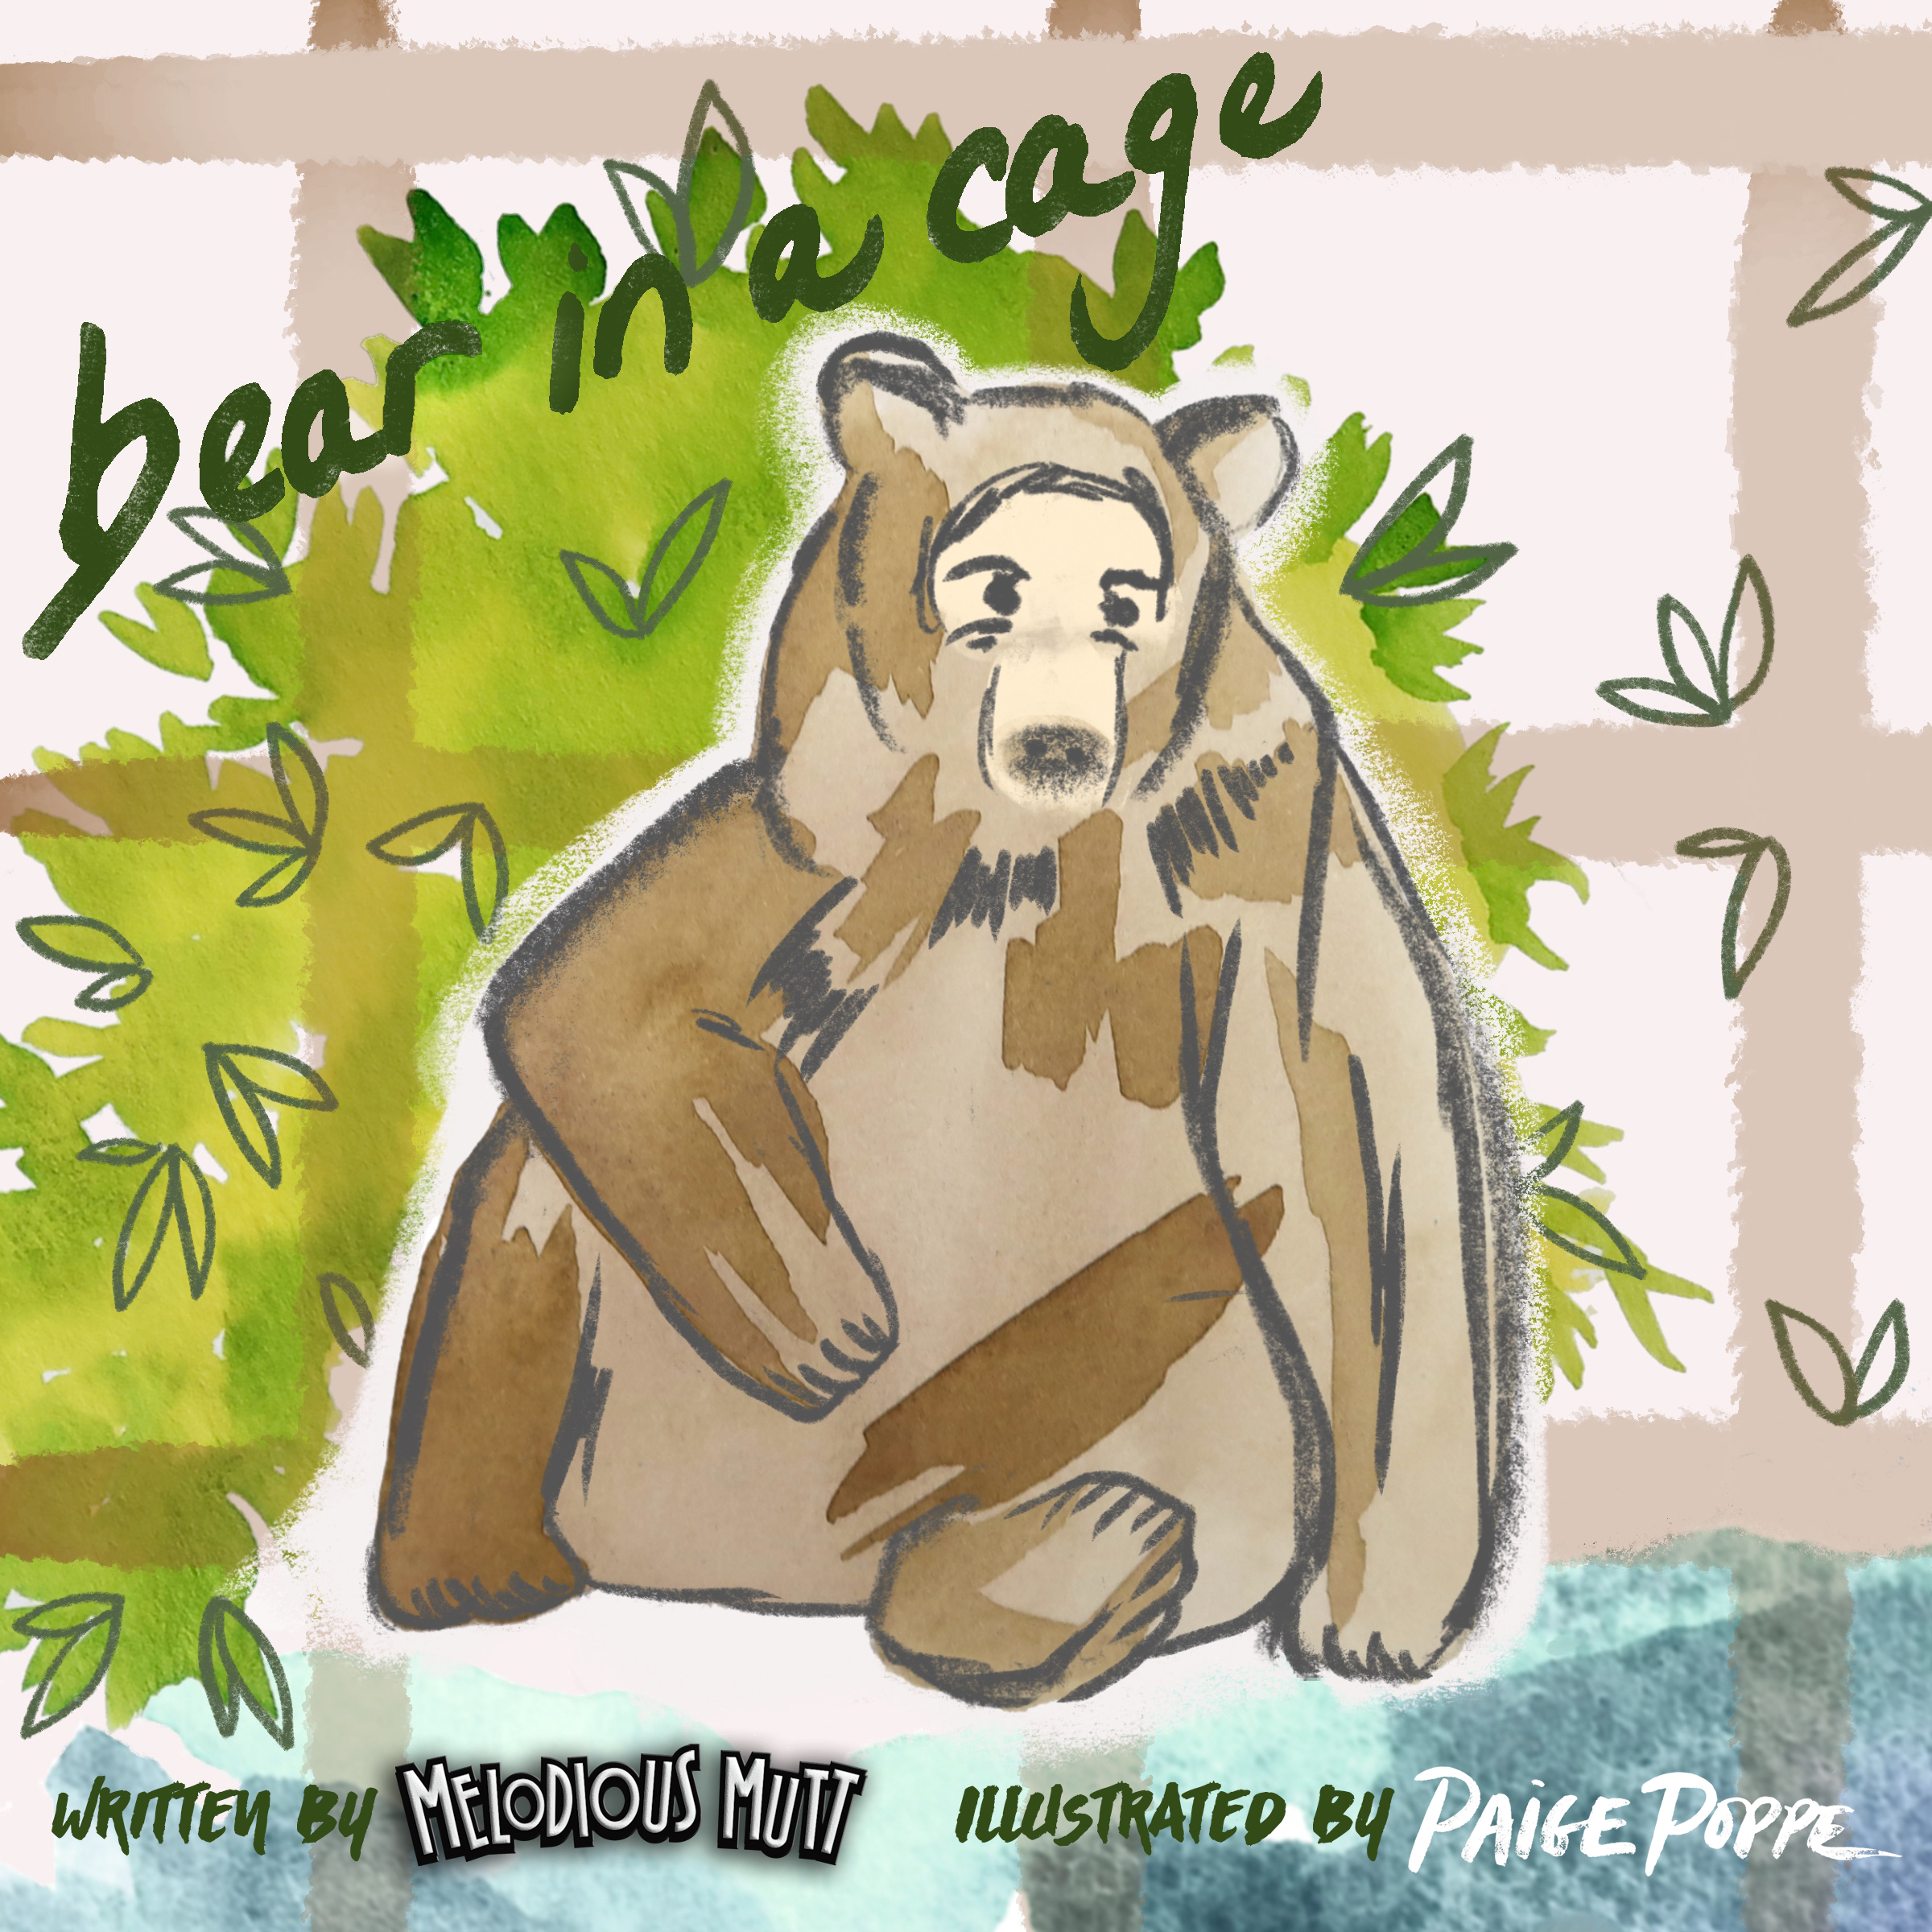 """In a small town in the middle of nowhere lived Henry the Bear.This is his story. - Based on the song """"Bear In A Cage"""" about Henry the Bear in Mitchell, Oregon"""